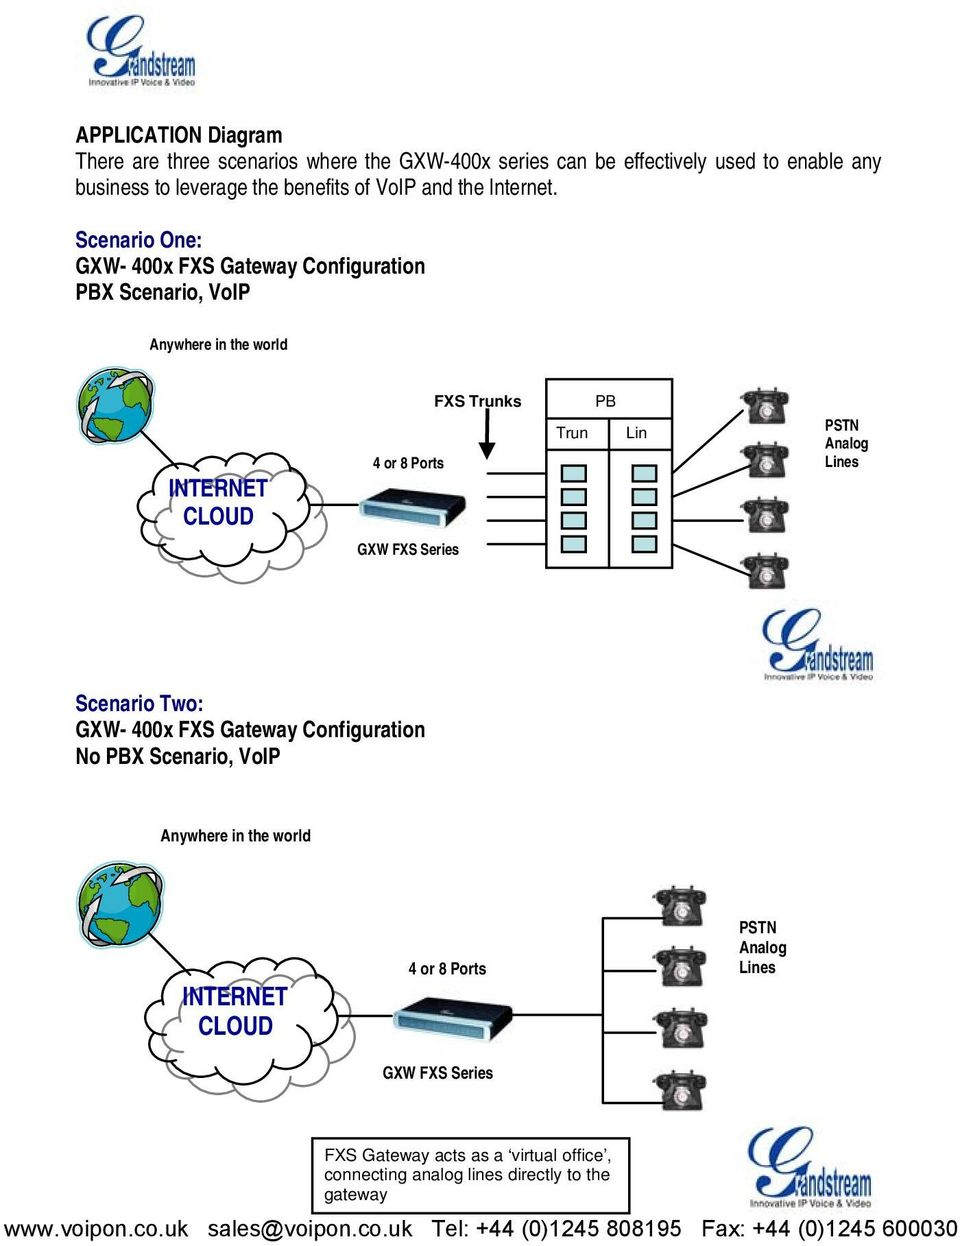 Scenario One: GXW- 400x FXS Gateway Configuration PBX Scenario, VoIP Anywhere in the world INTERNET CLOUD 4 or 8 Ports FXS Trunks Trun PB Lin